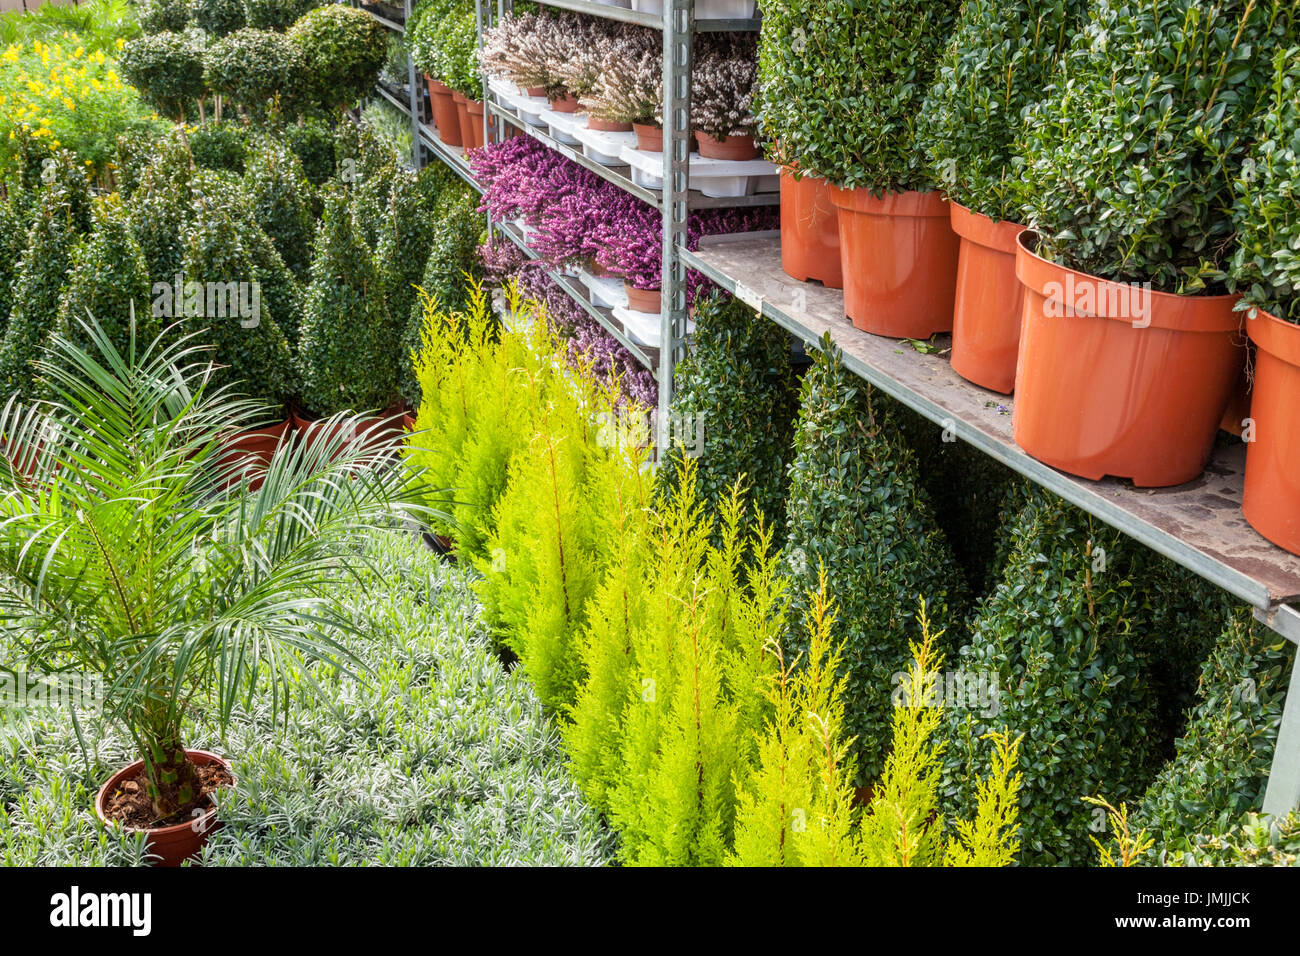 Many pot plants on the floor and stacked on shelves, UK - Stock Image